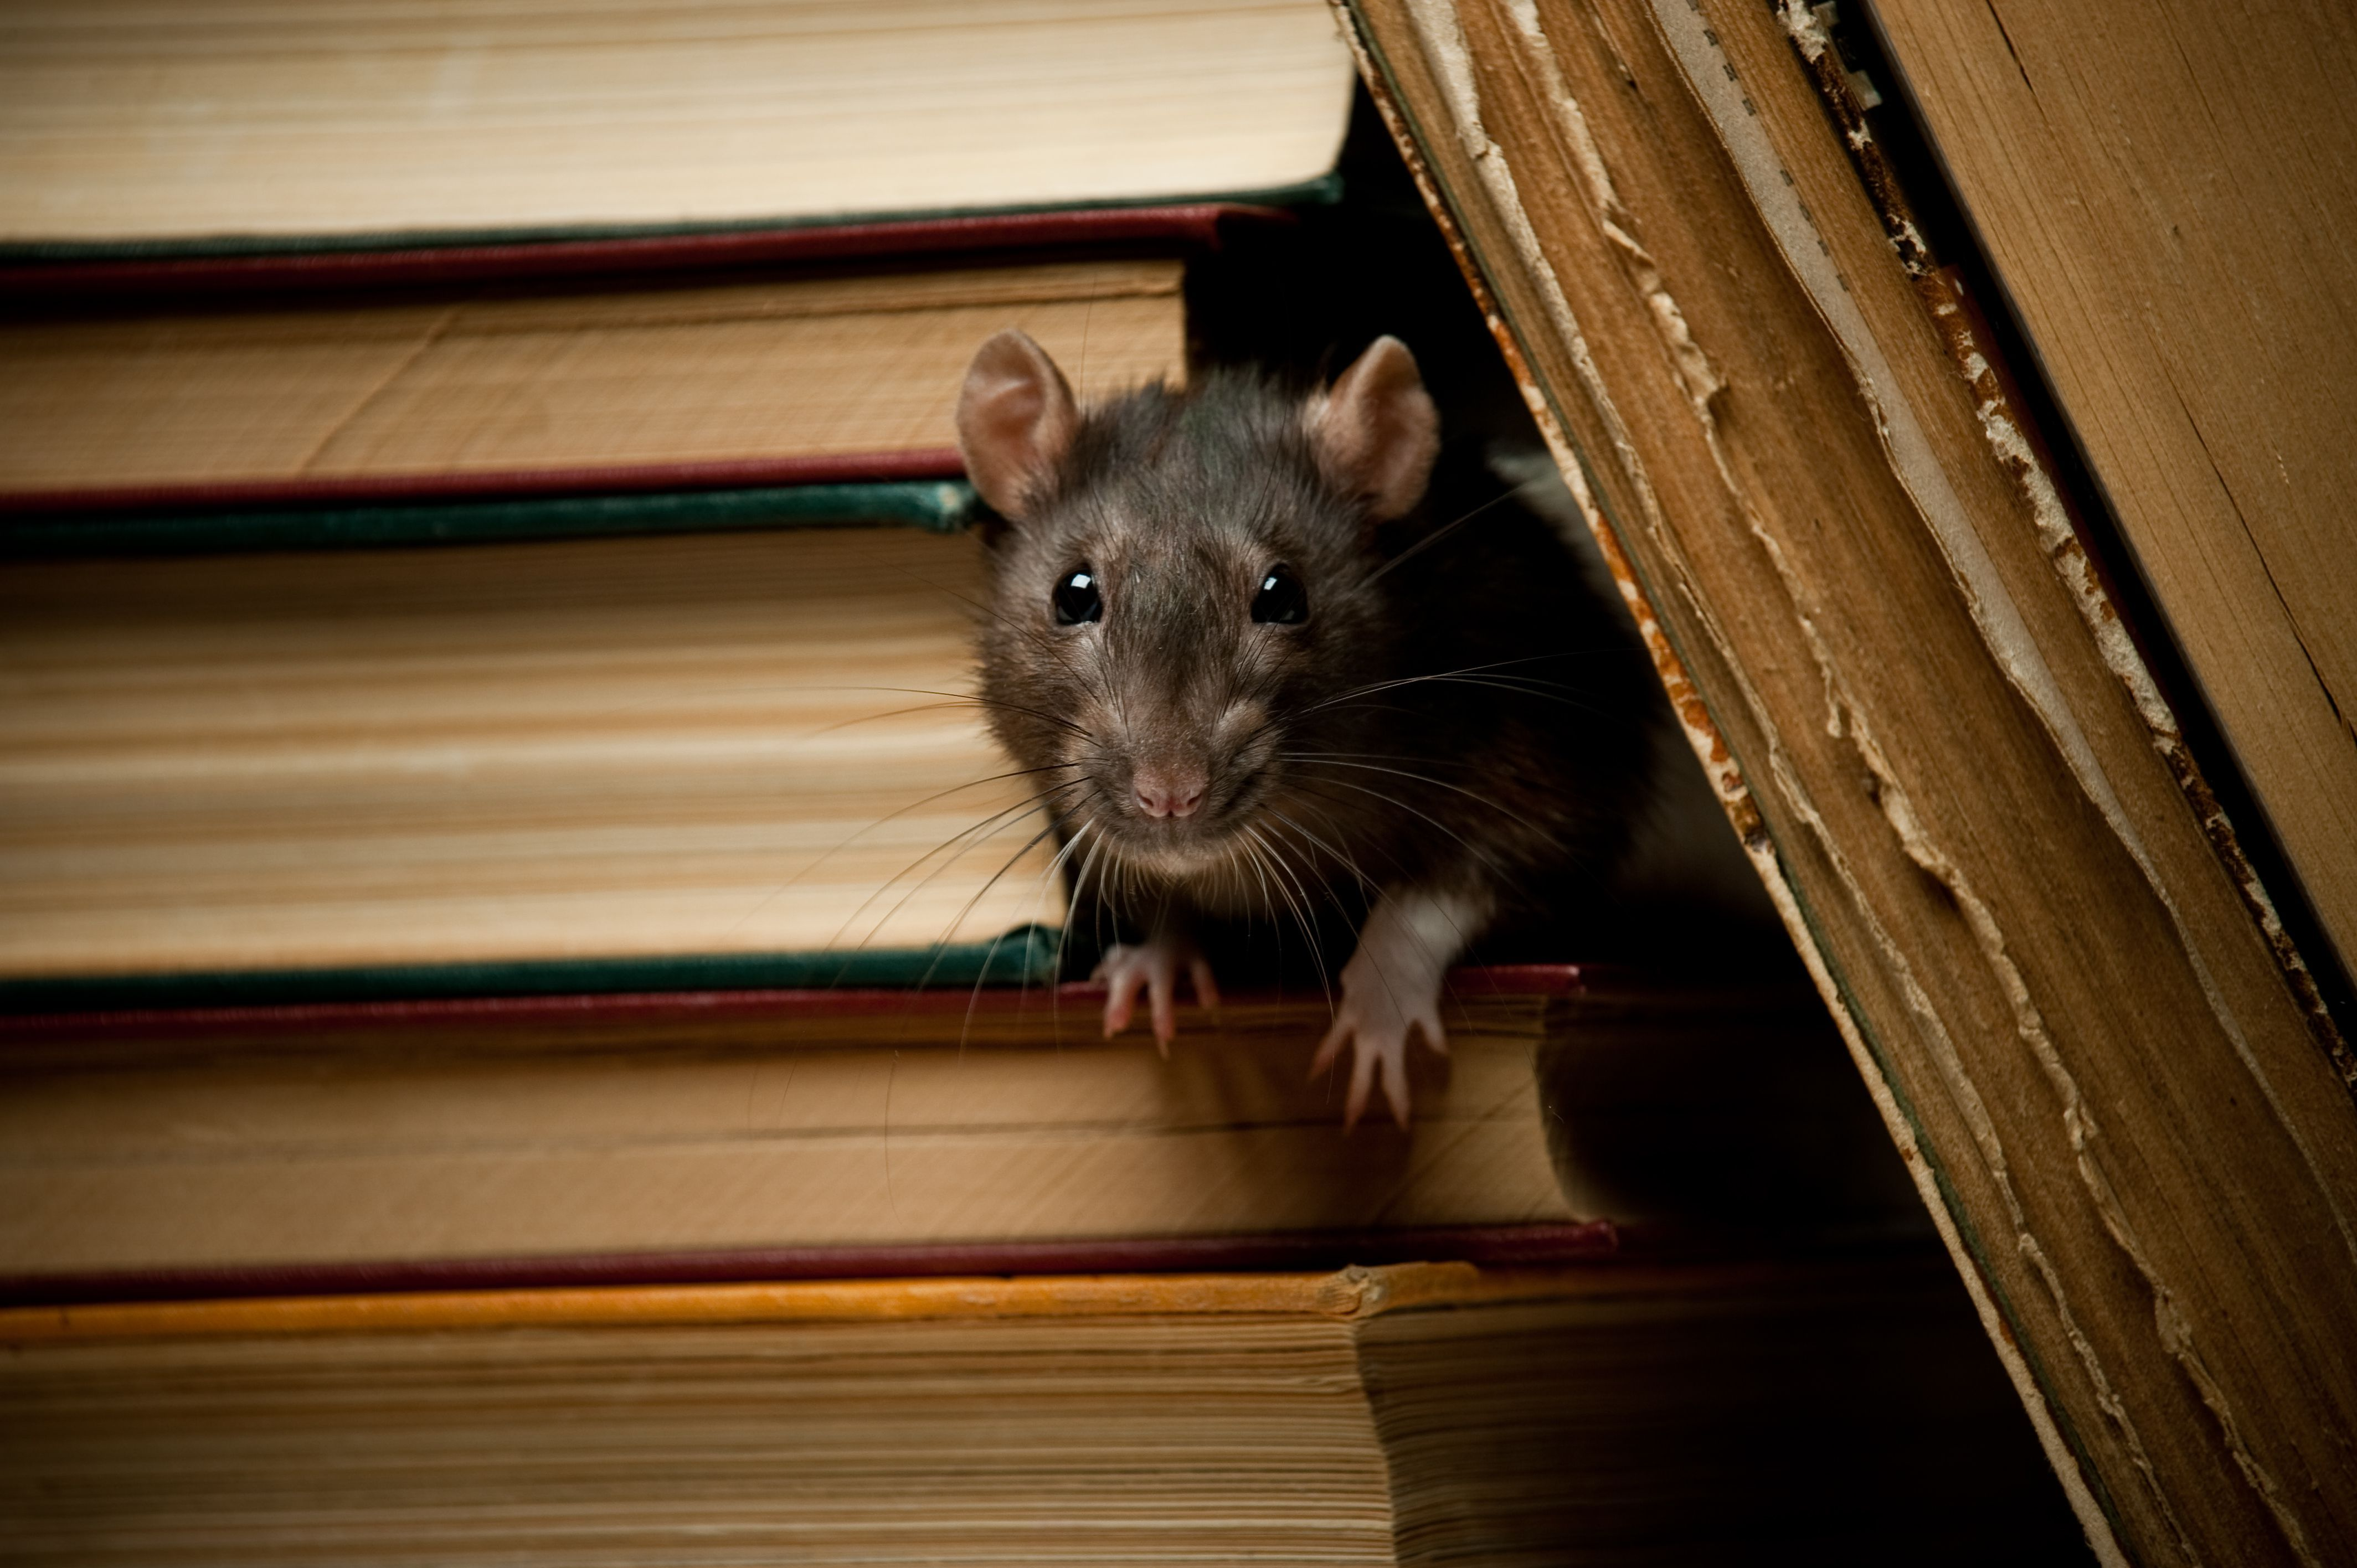 Discover how to know if you have rats in your home rats